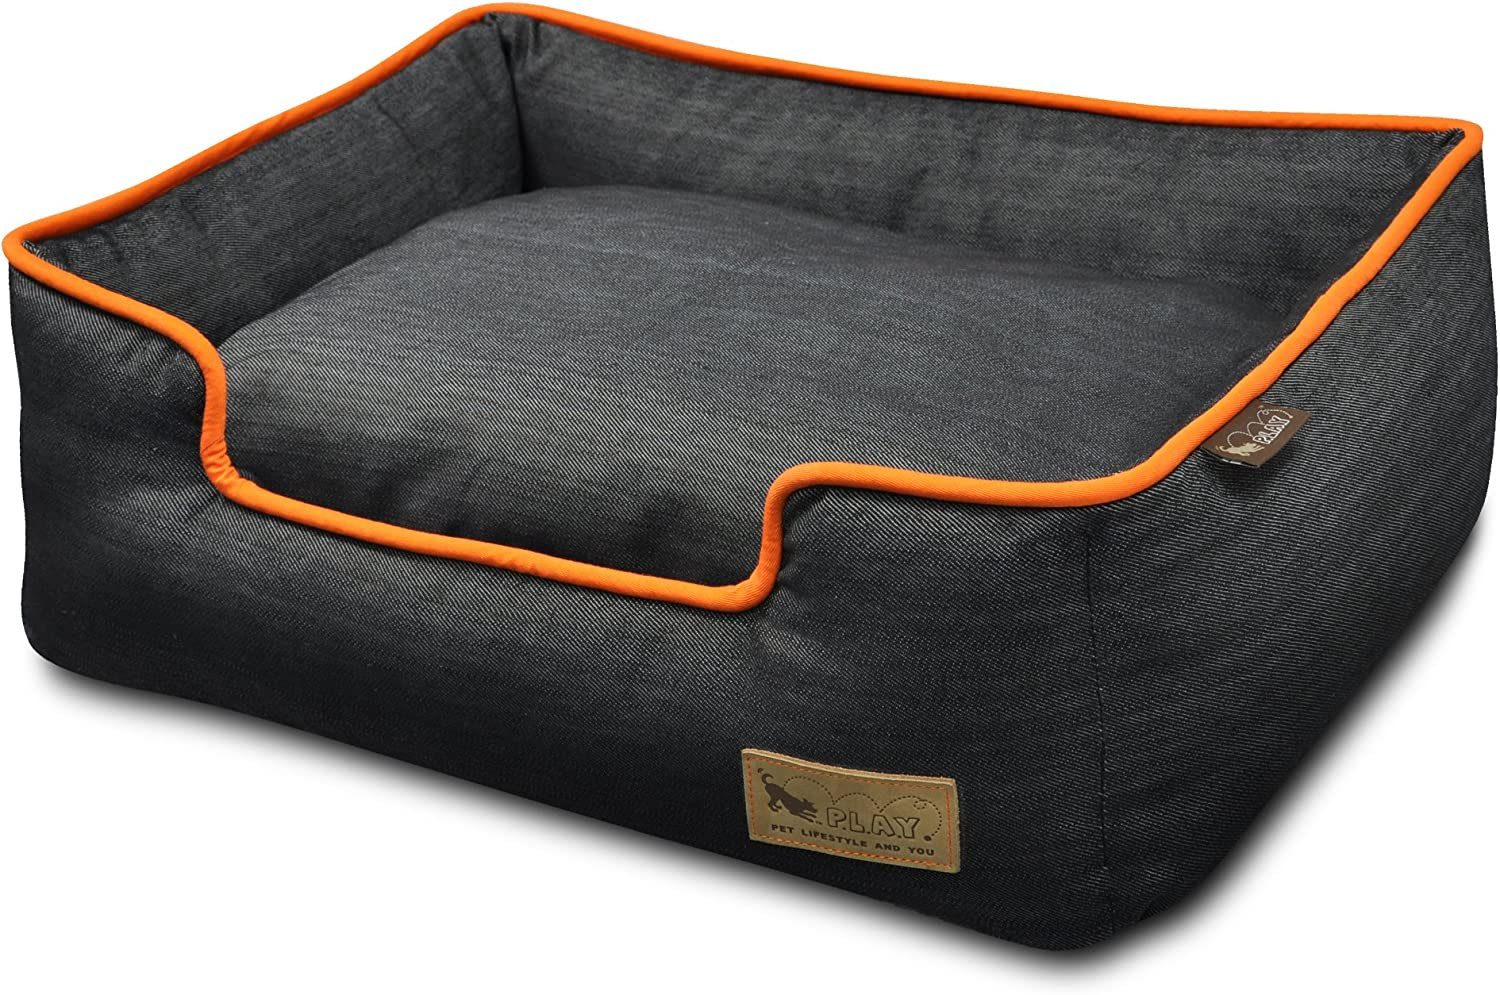 P.L.A.Y. Pet Lifestyle and You Eco-friendly Lounge Beds for Dogs, Removable and Washable Covers and Inserts, comes in Small Medium Large and XL sizes